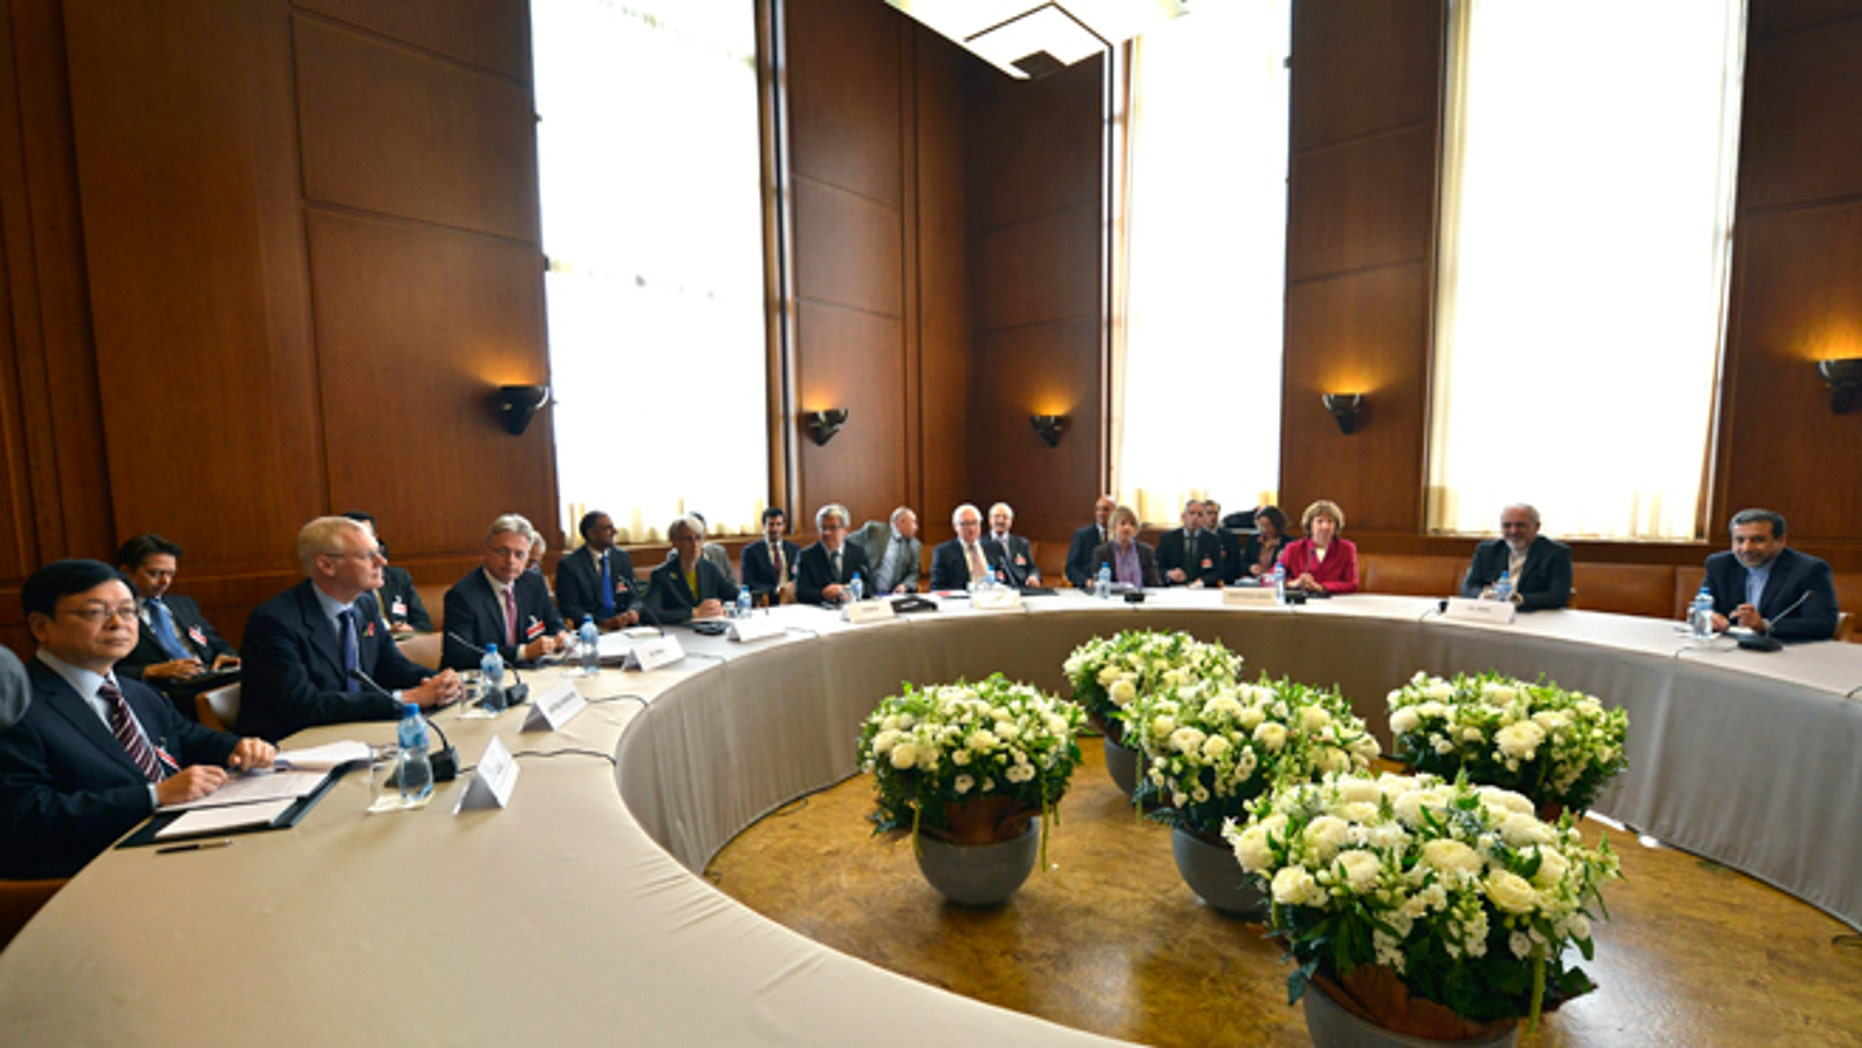 Nov. 7, 2013: A general view shows participants before the start of two days of closed-door nuclear talks at the United Nations offices in Geneva Switzerland.